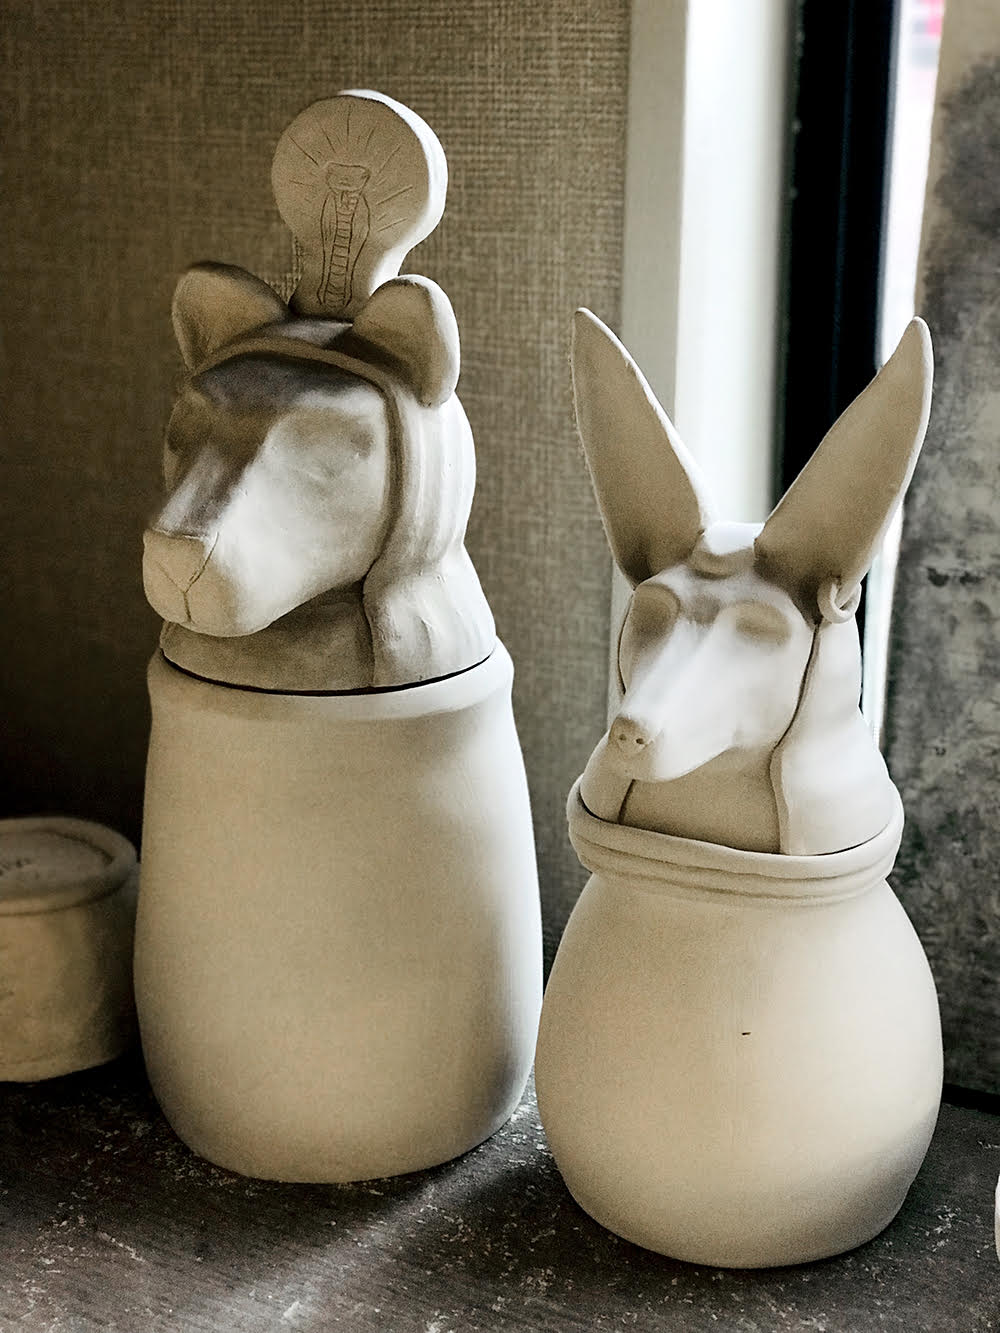 Vases with dogs